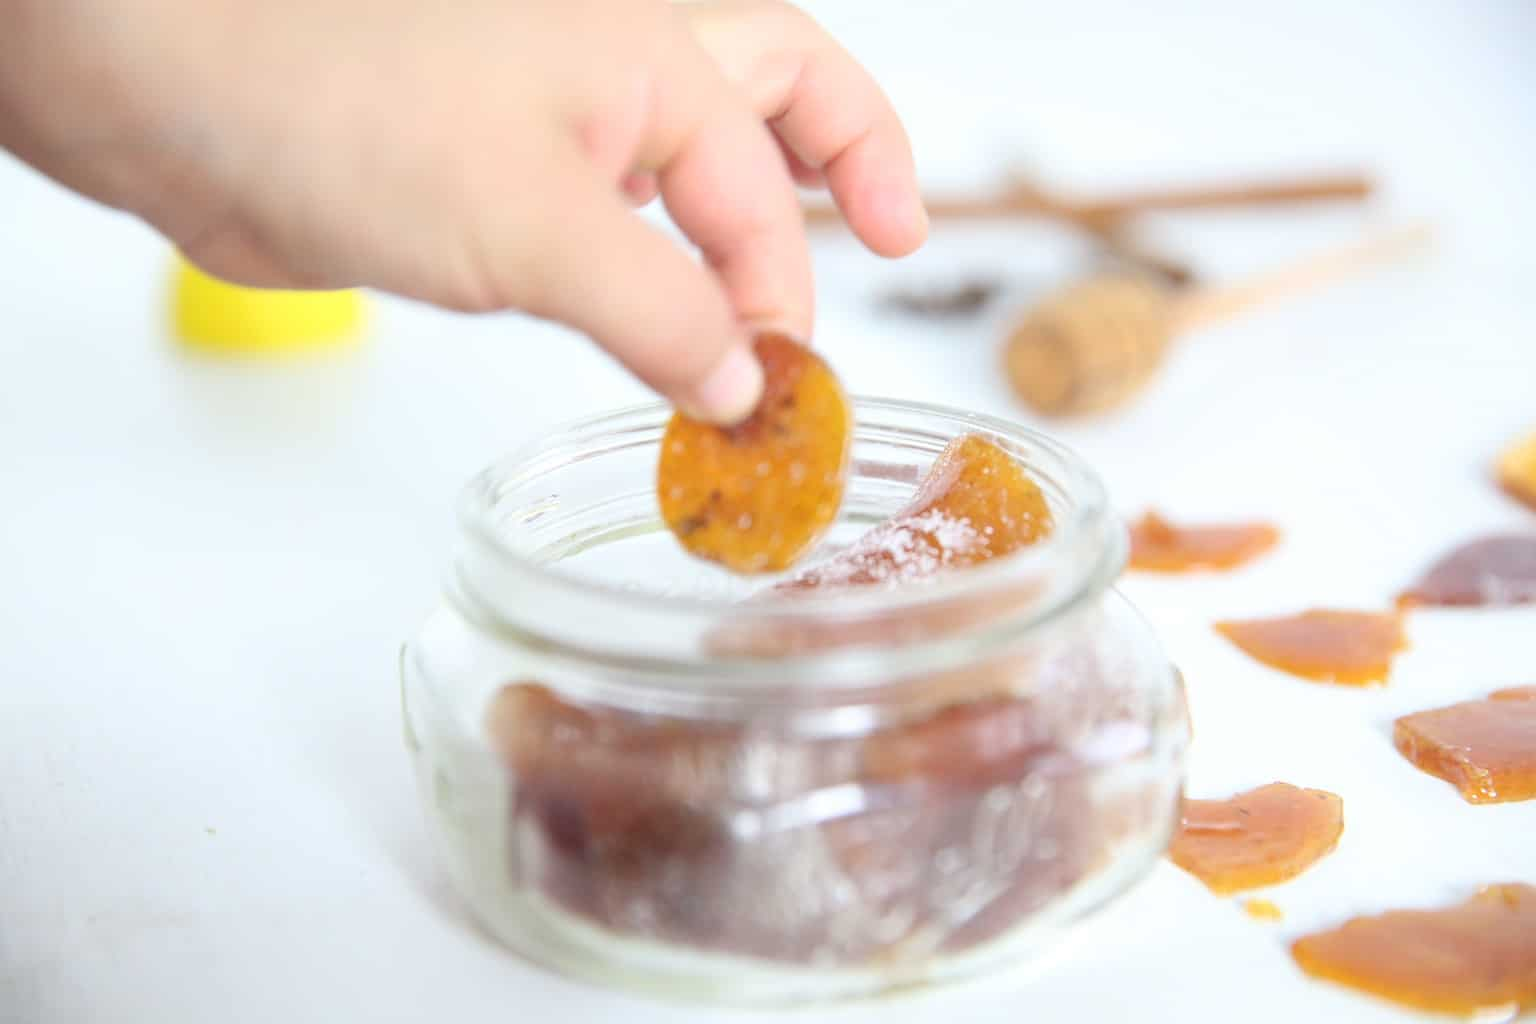 Removing cough drop from small mason jar.